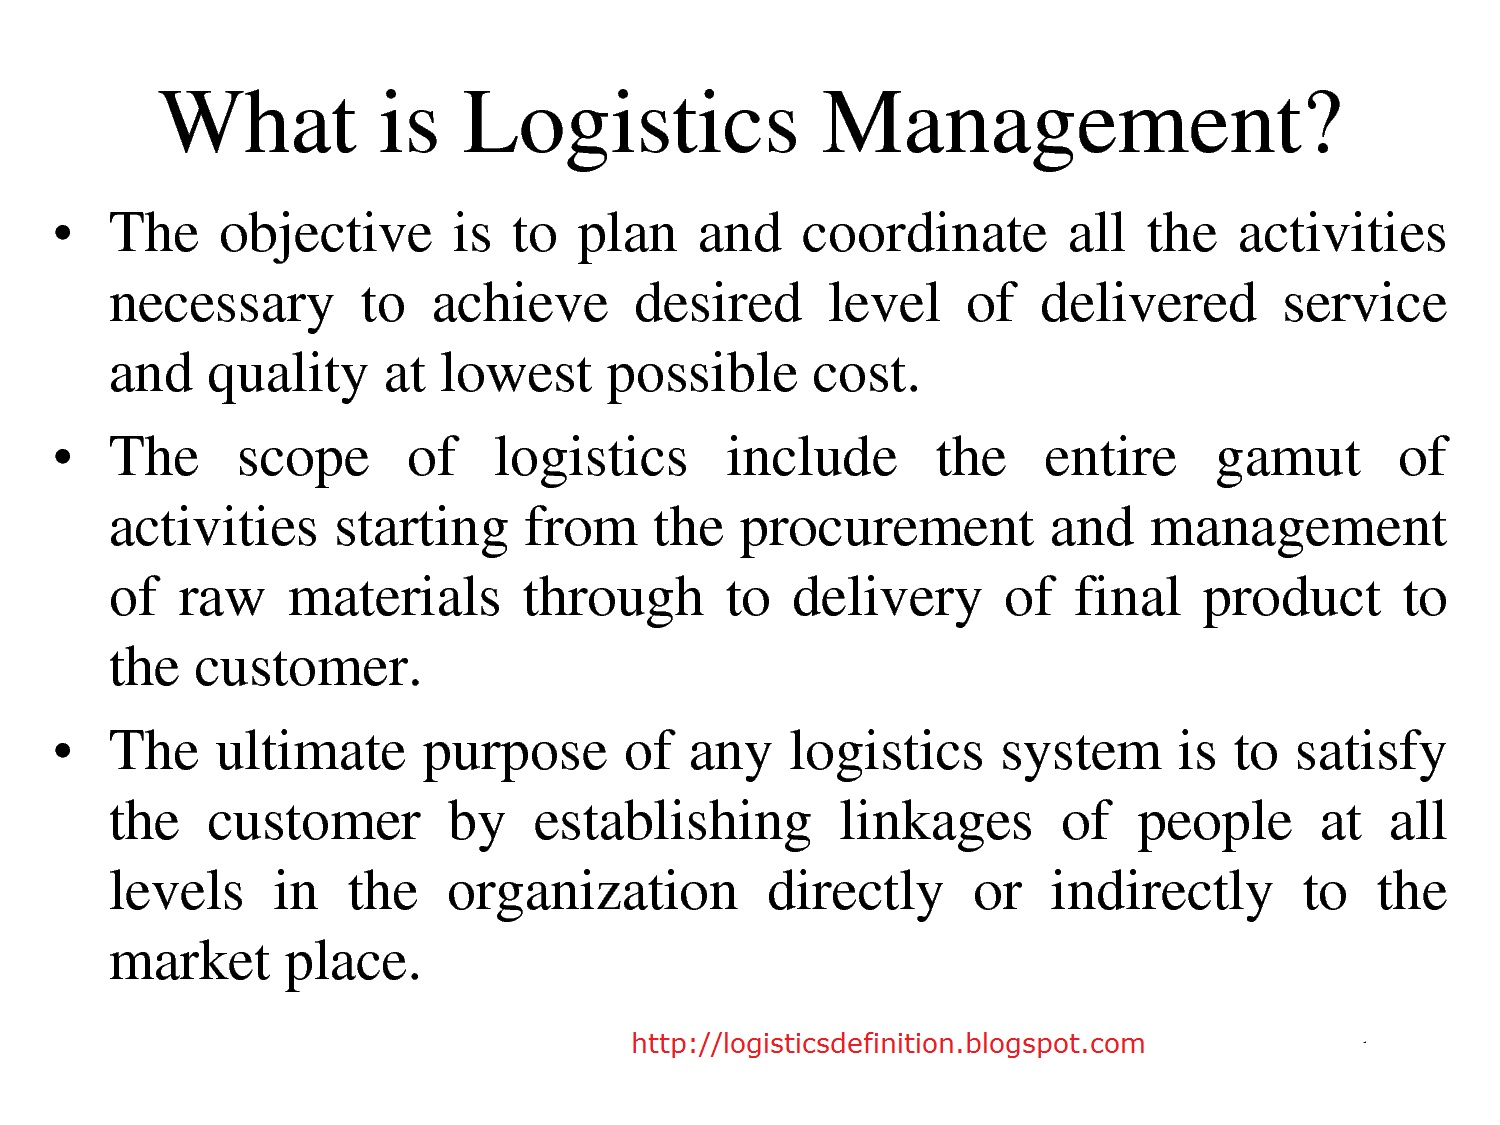 logistics definition, glossary jobs management as it is.: what is